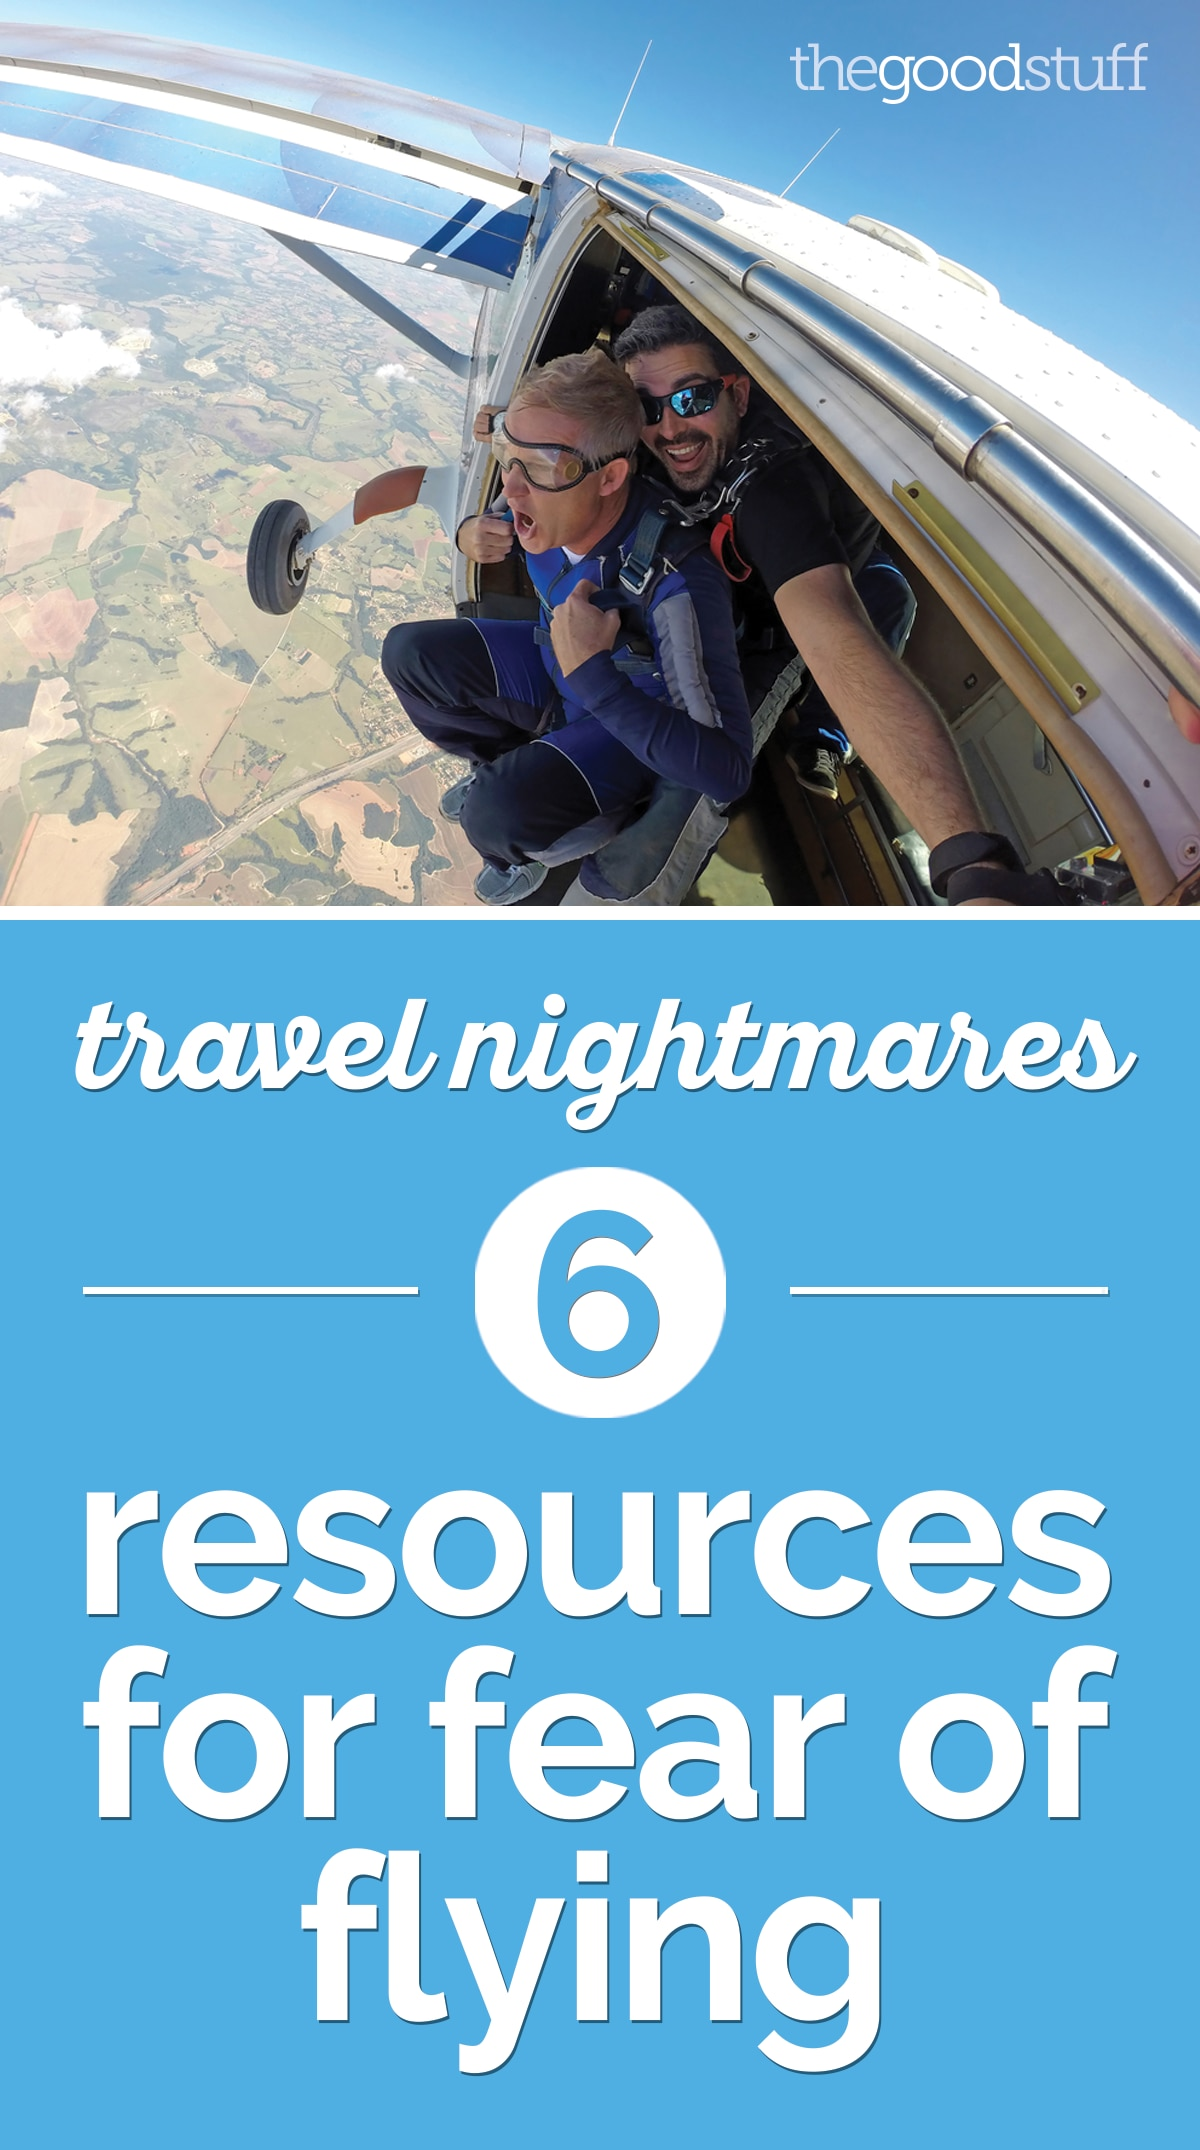 Travel Nightmares: 6 Resources for Fear of Flying   thegoodstuff